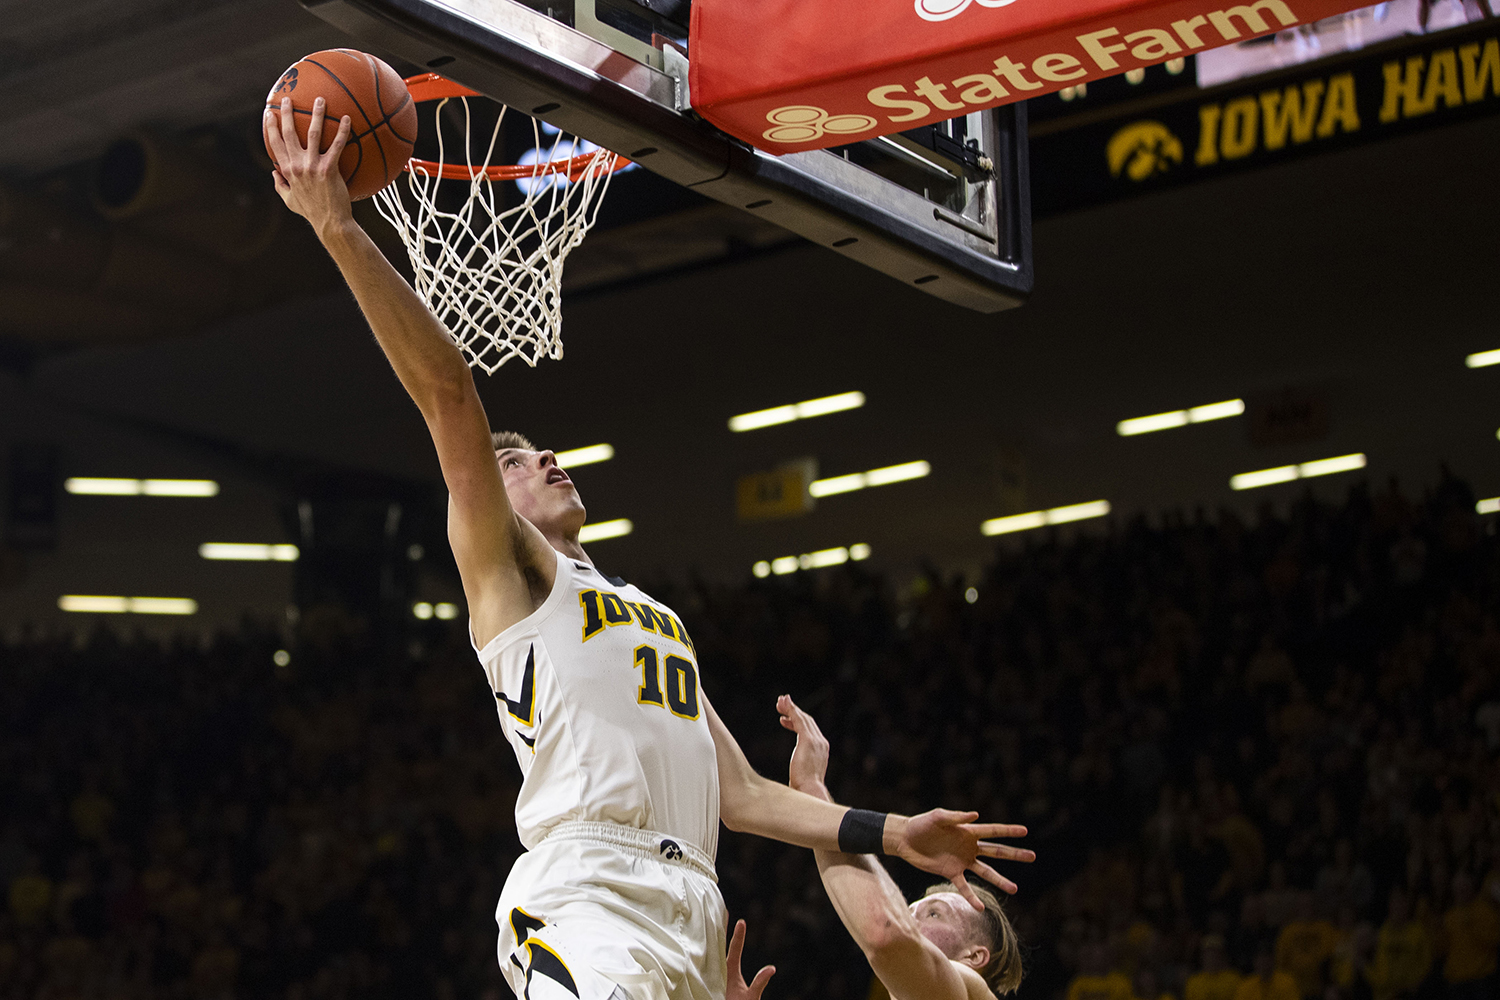 Iowa+guard+Joe+Wieskamp+attempts+a+layup+during+the+Iowa%2FMichigan+men%27s+basketball+game+at+Carver-Hawkeye+Arena+on+Friday%2C+February+1%2C+2019.+The+Hawkeyes+took+down+the+No.+5+ranked+Wolverines%2C+74-59.+